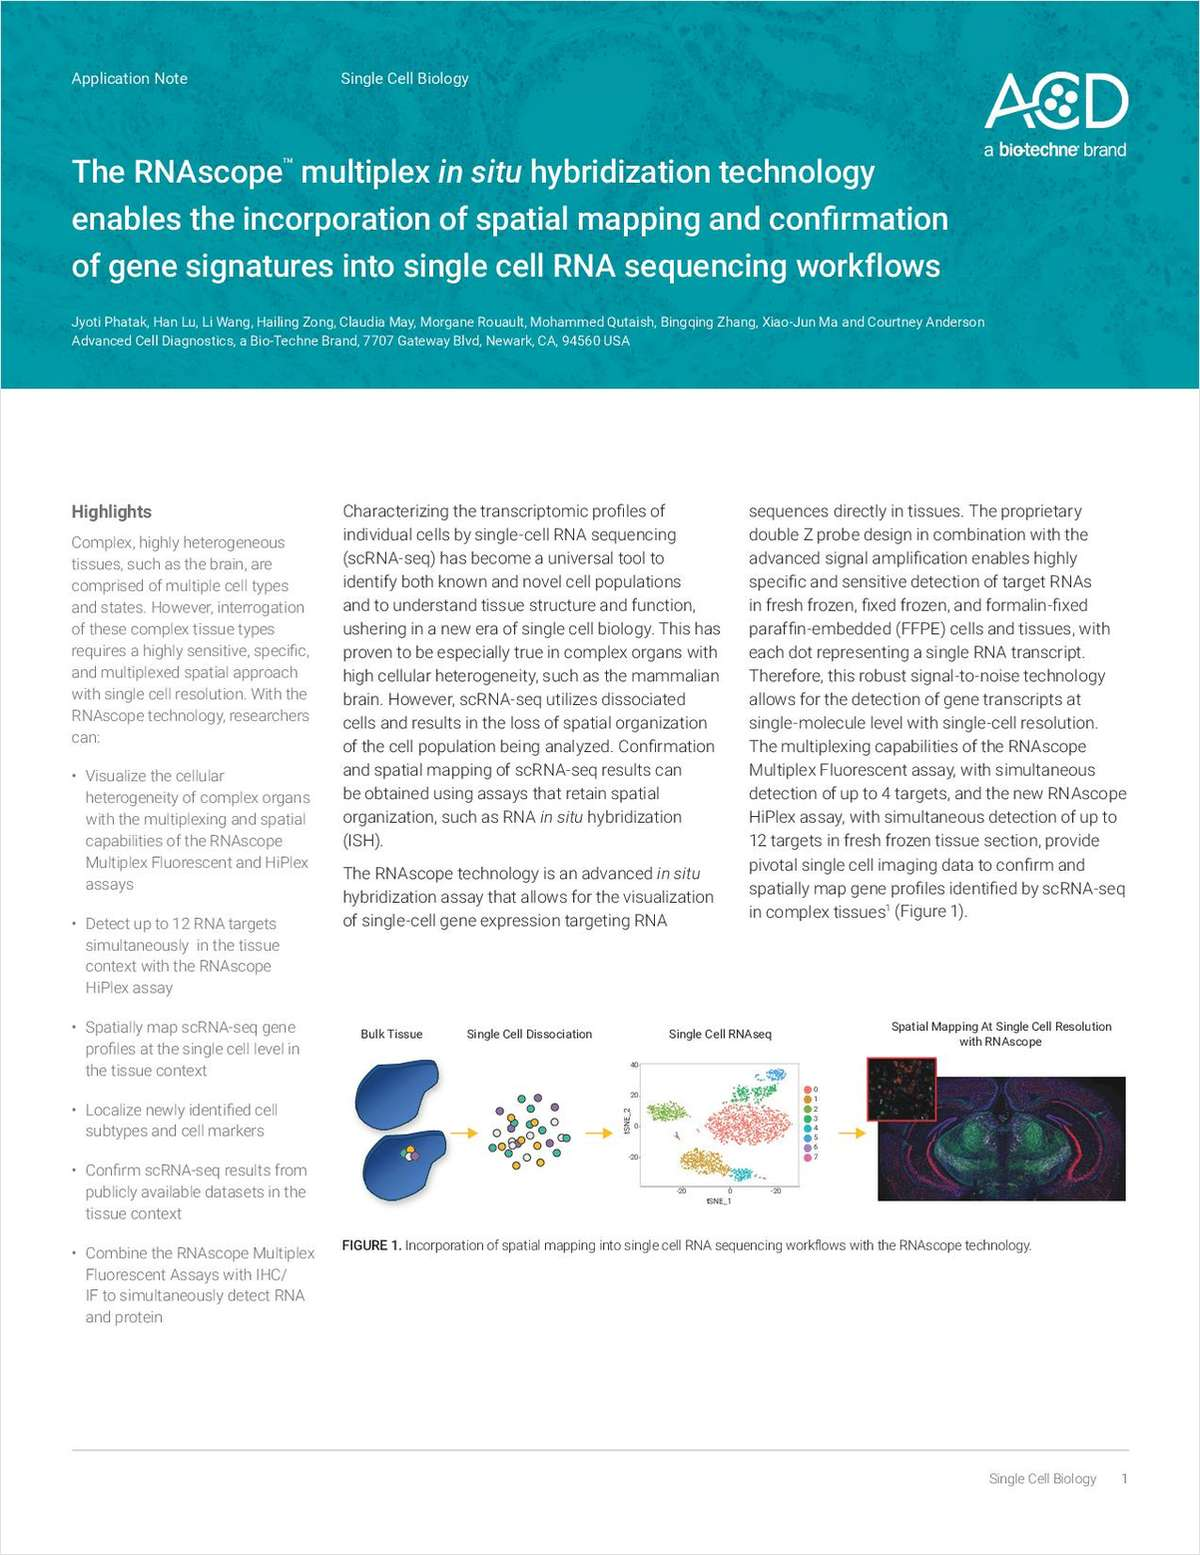 The RNAscope Multiplex In Situ Hybridization Technology Enables the Incorporation of Spatial Mapping and Confirmation of Gene Signatures into Single-Cell RNA Sequencing Workflows